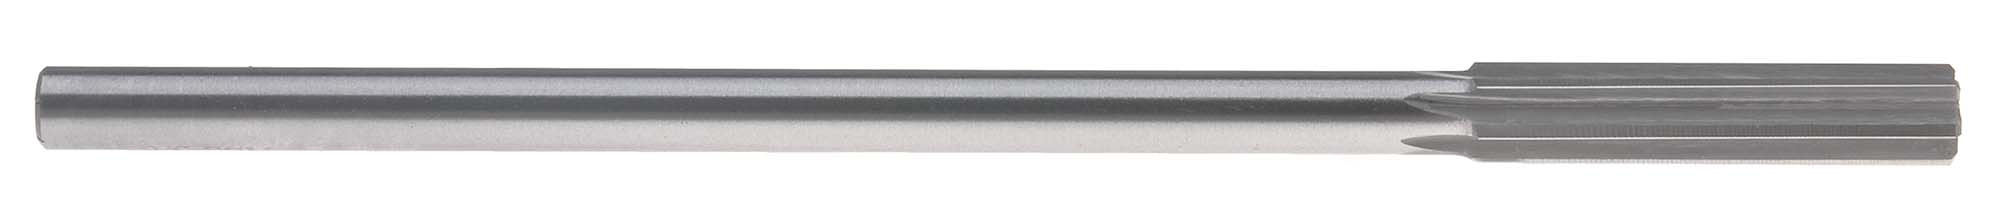 .749 Straight Shank Chucking Reamer, Straight Flute, High Speed Steel